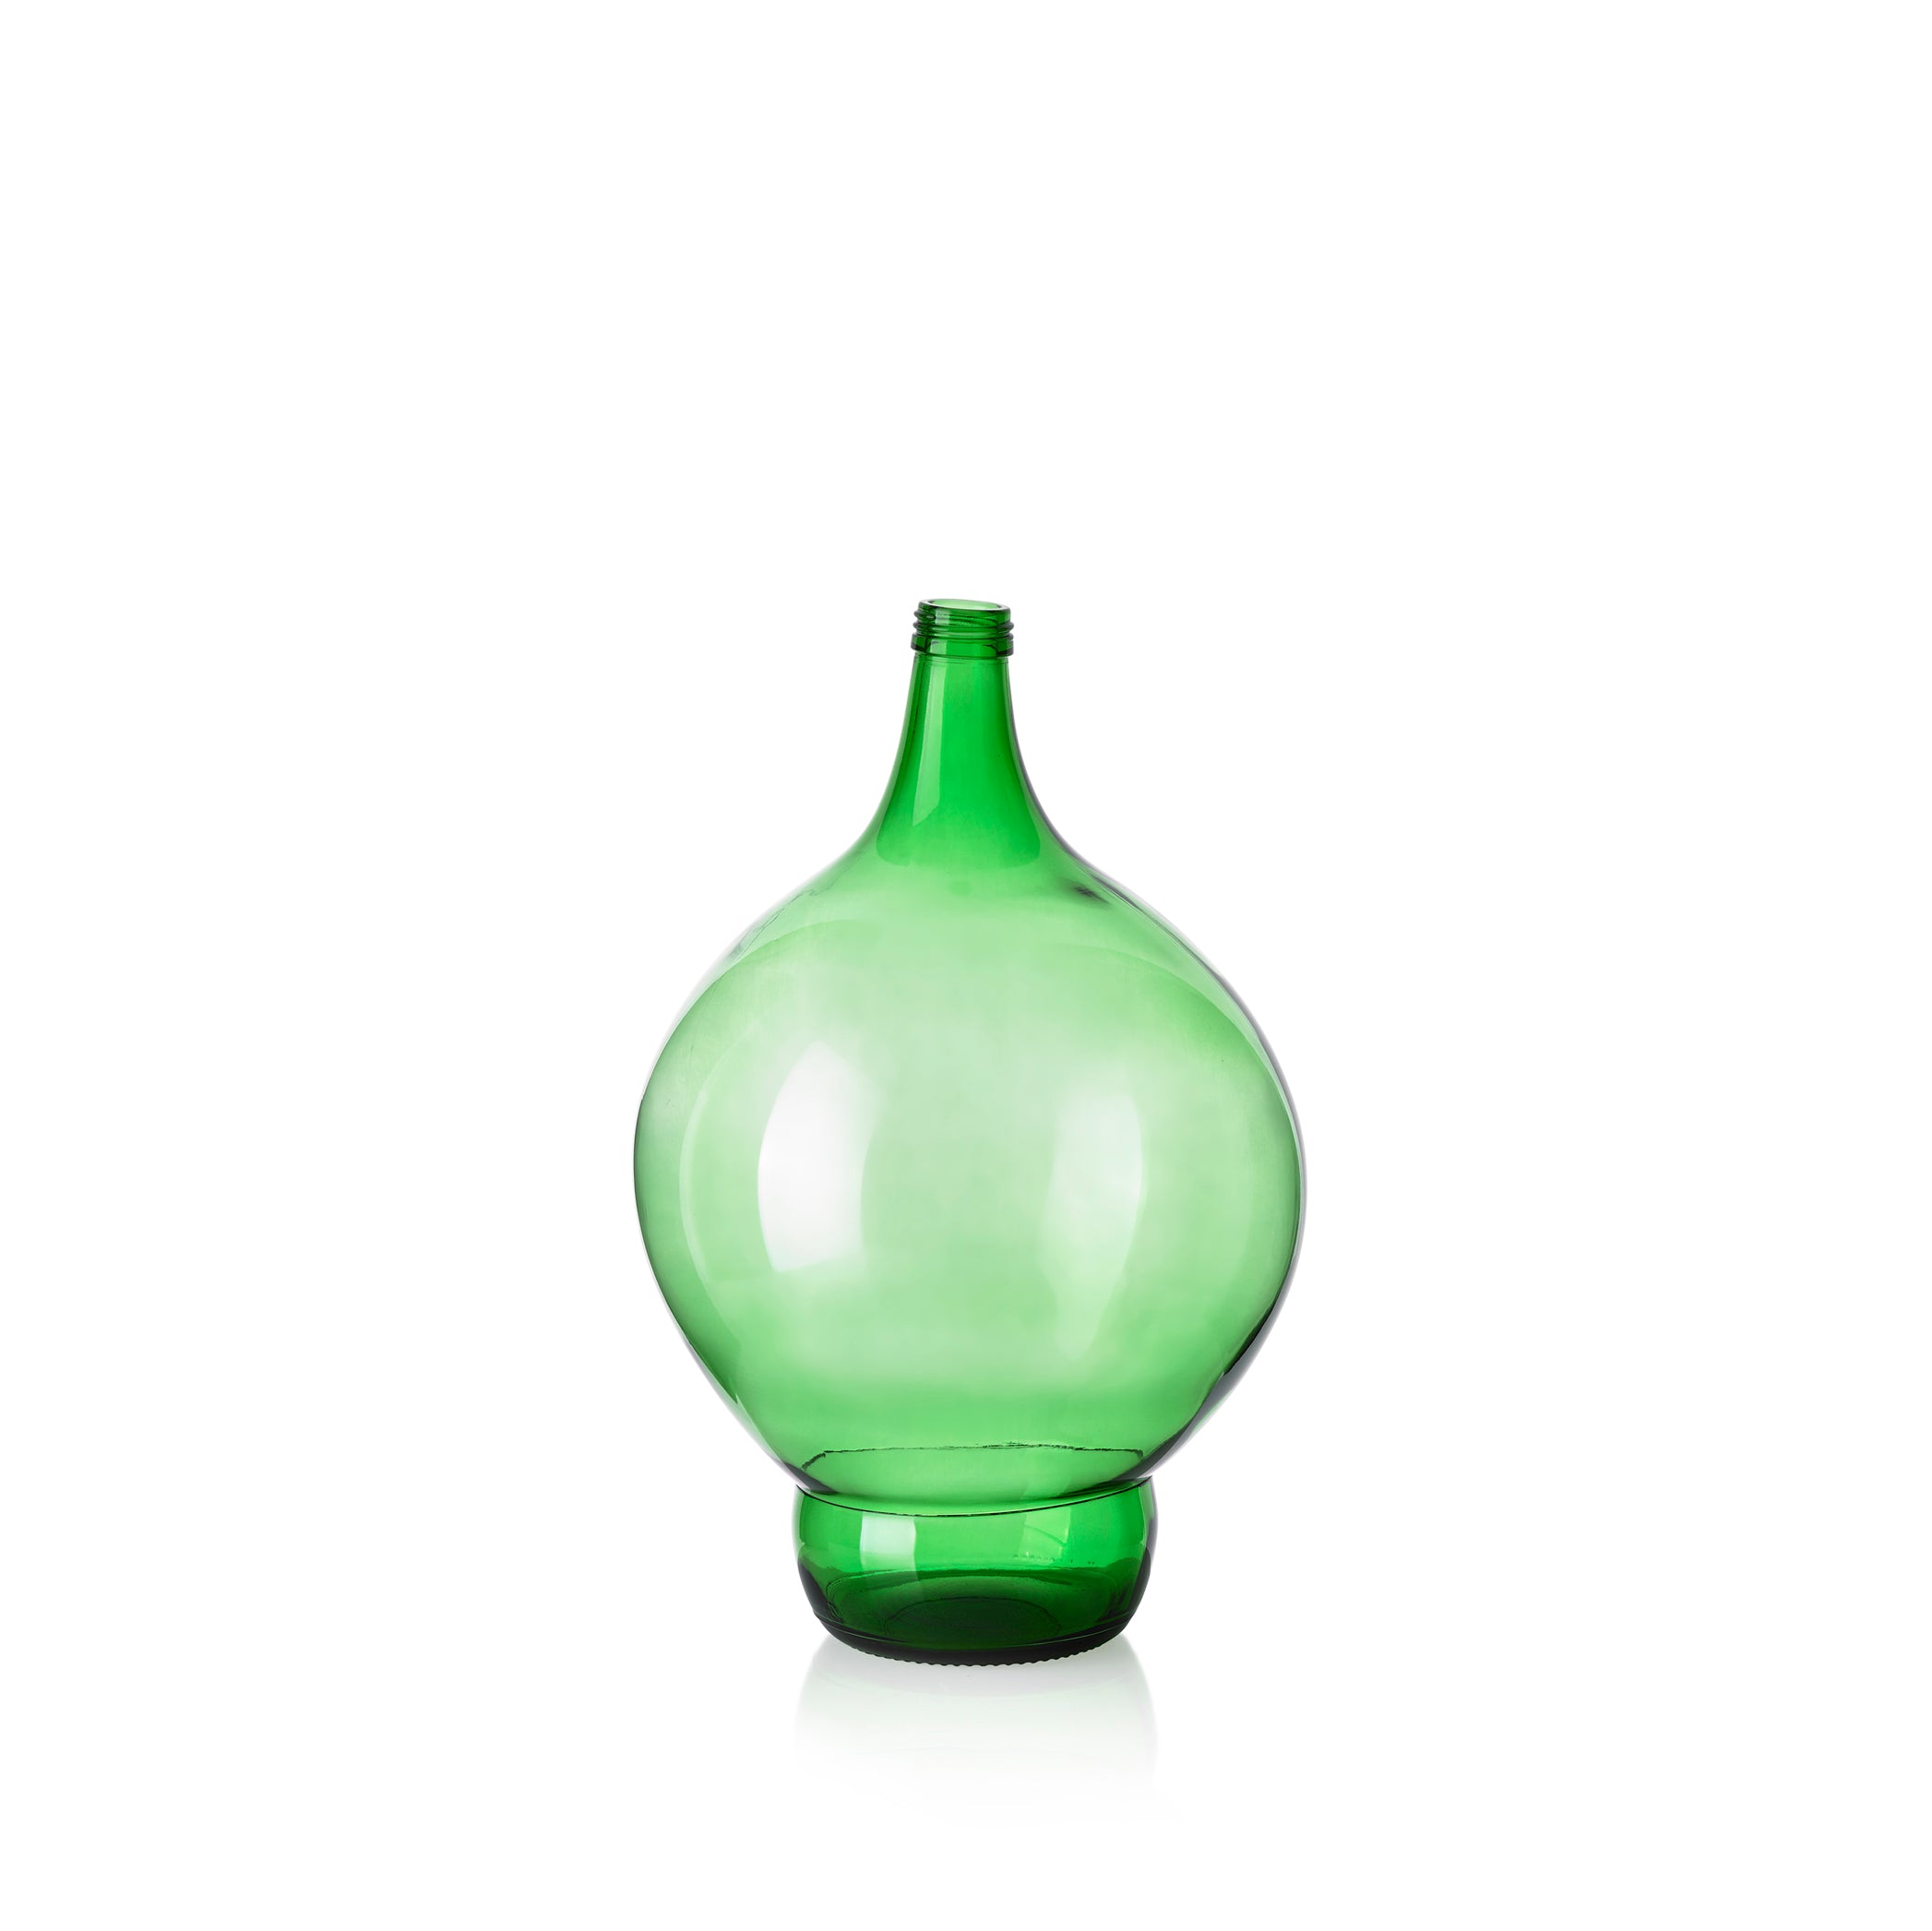 Handblown Genie Glass Bottle - Rajah